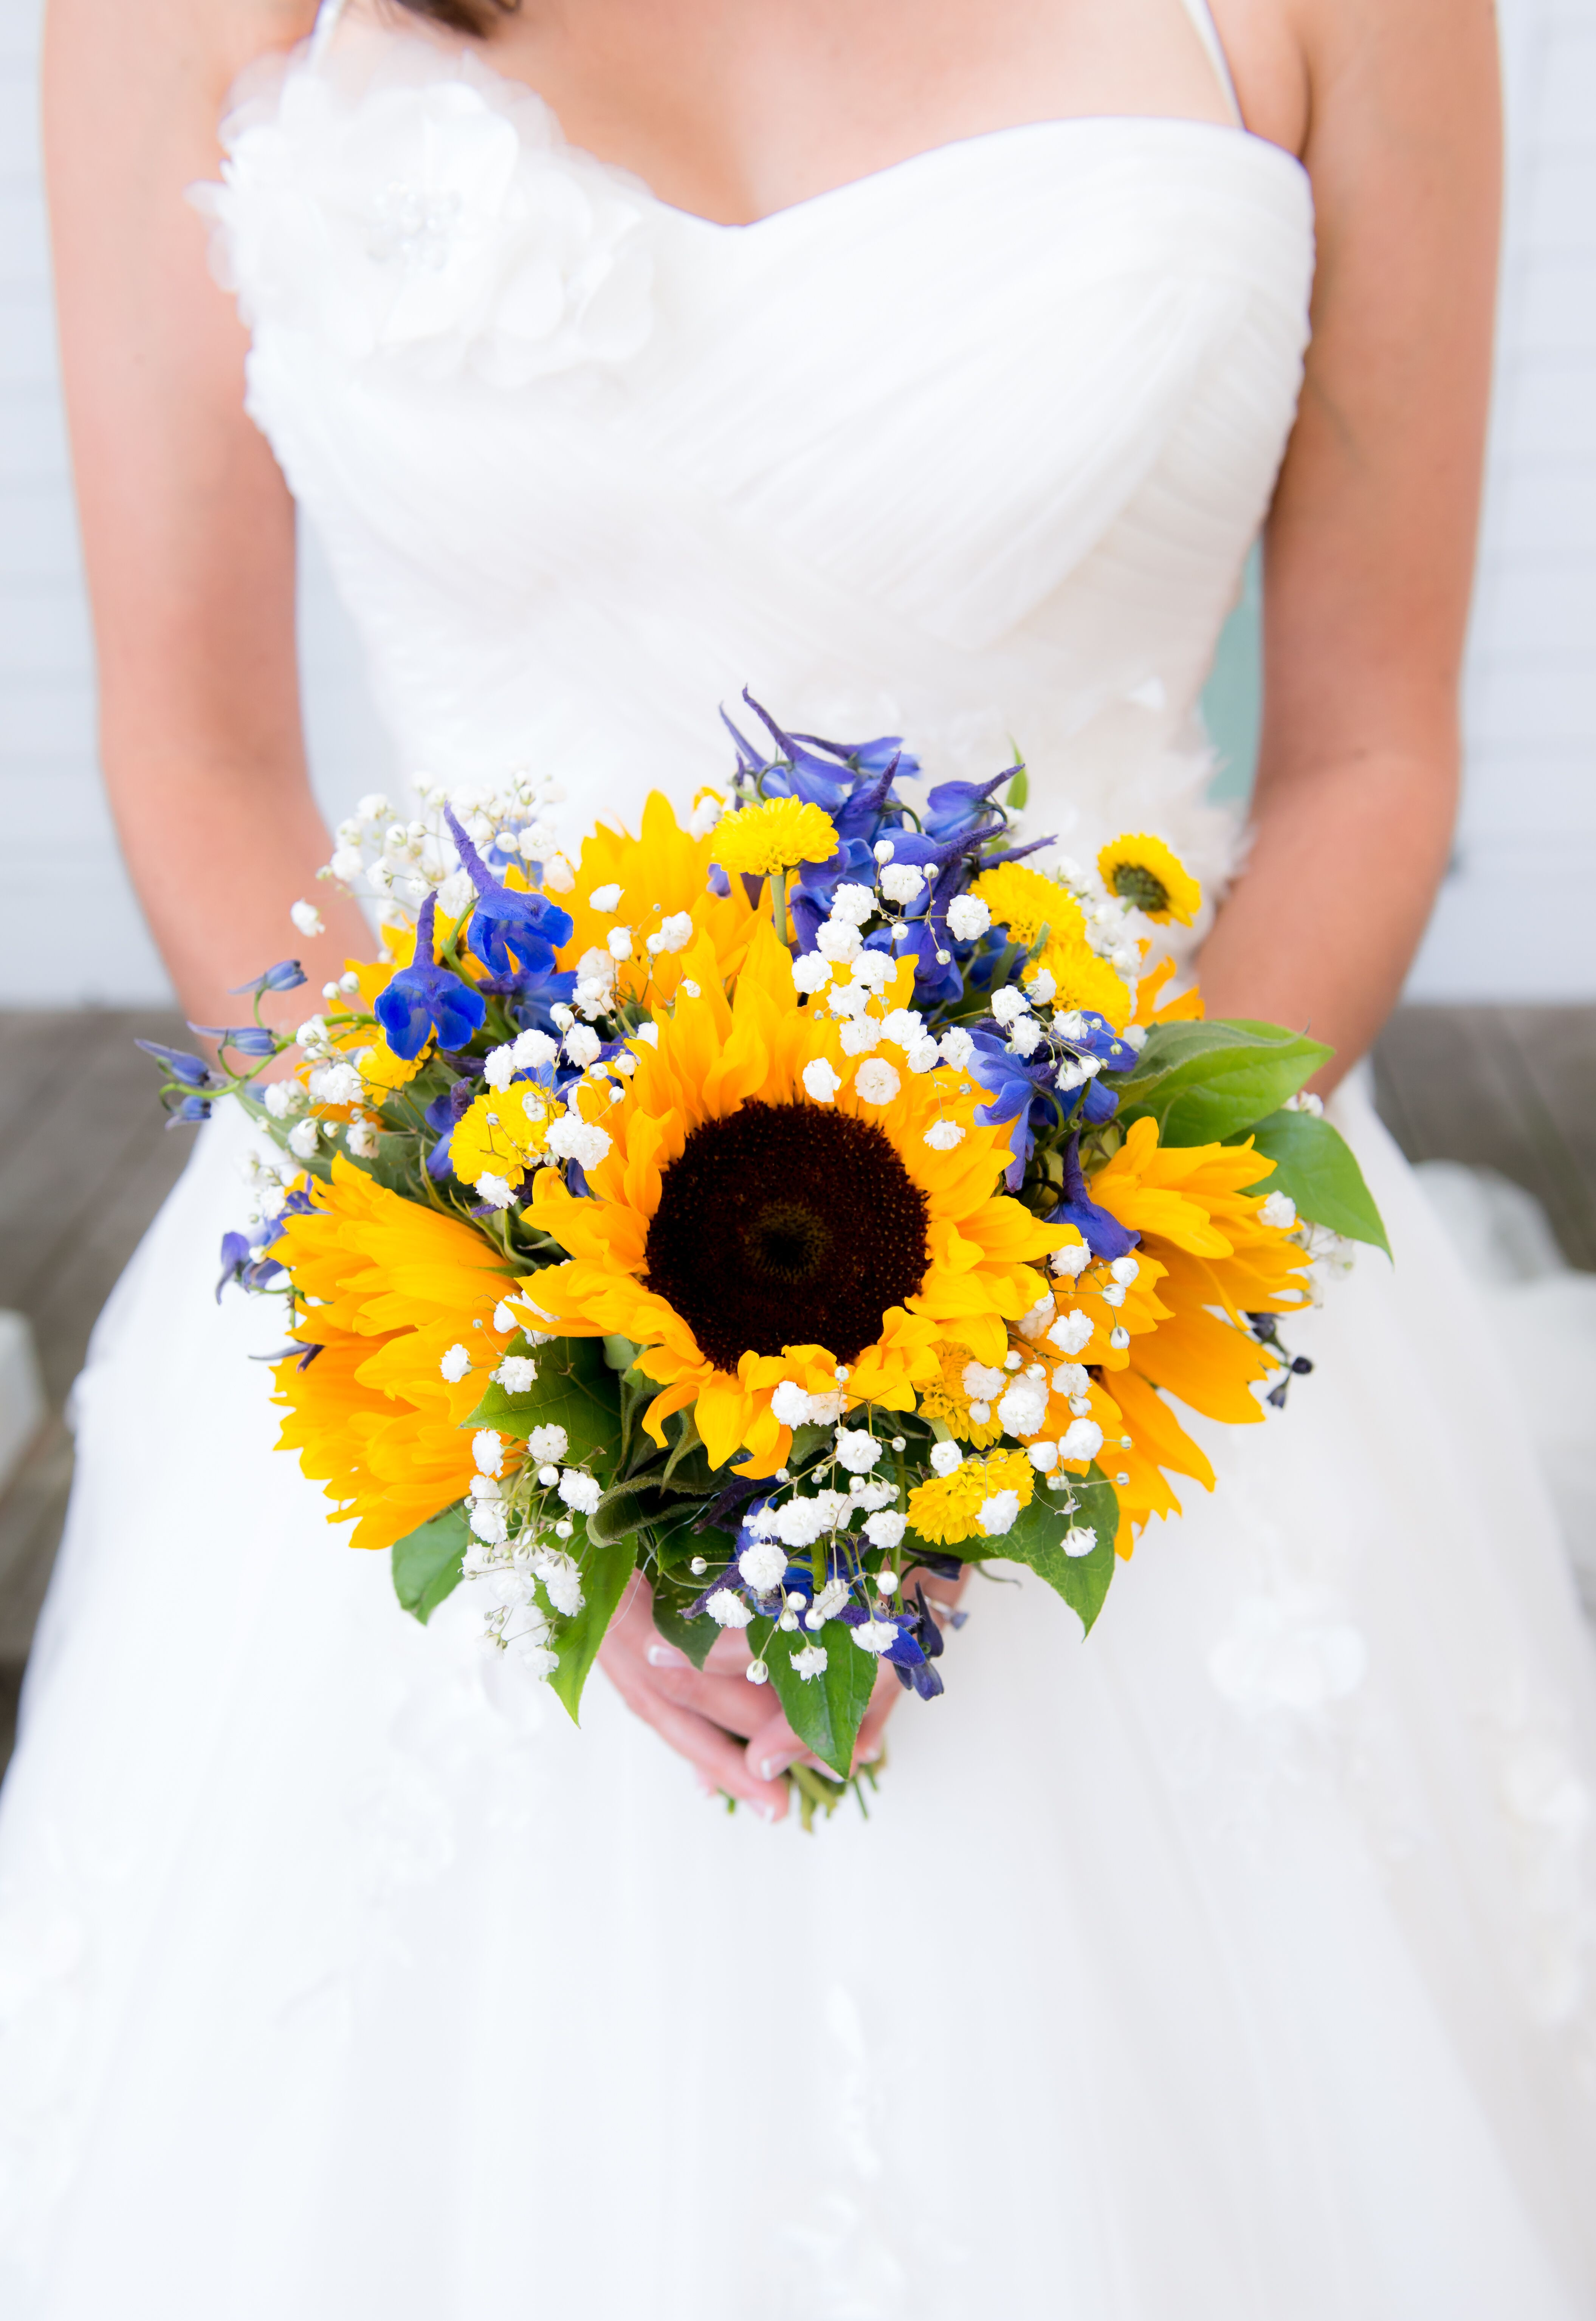 Sunflower Bridal Bouquet With Accents Of Royal Blue